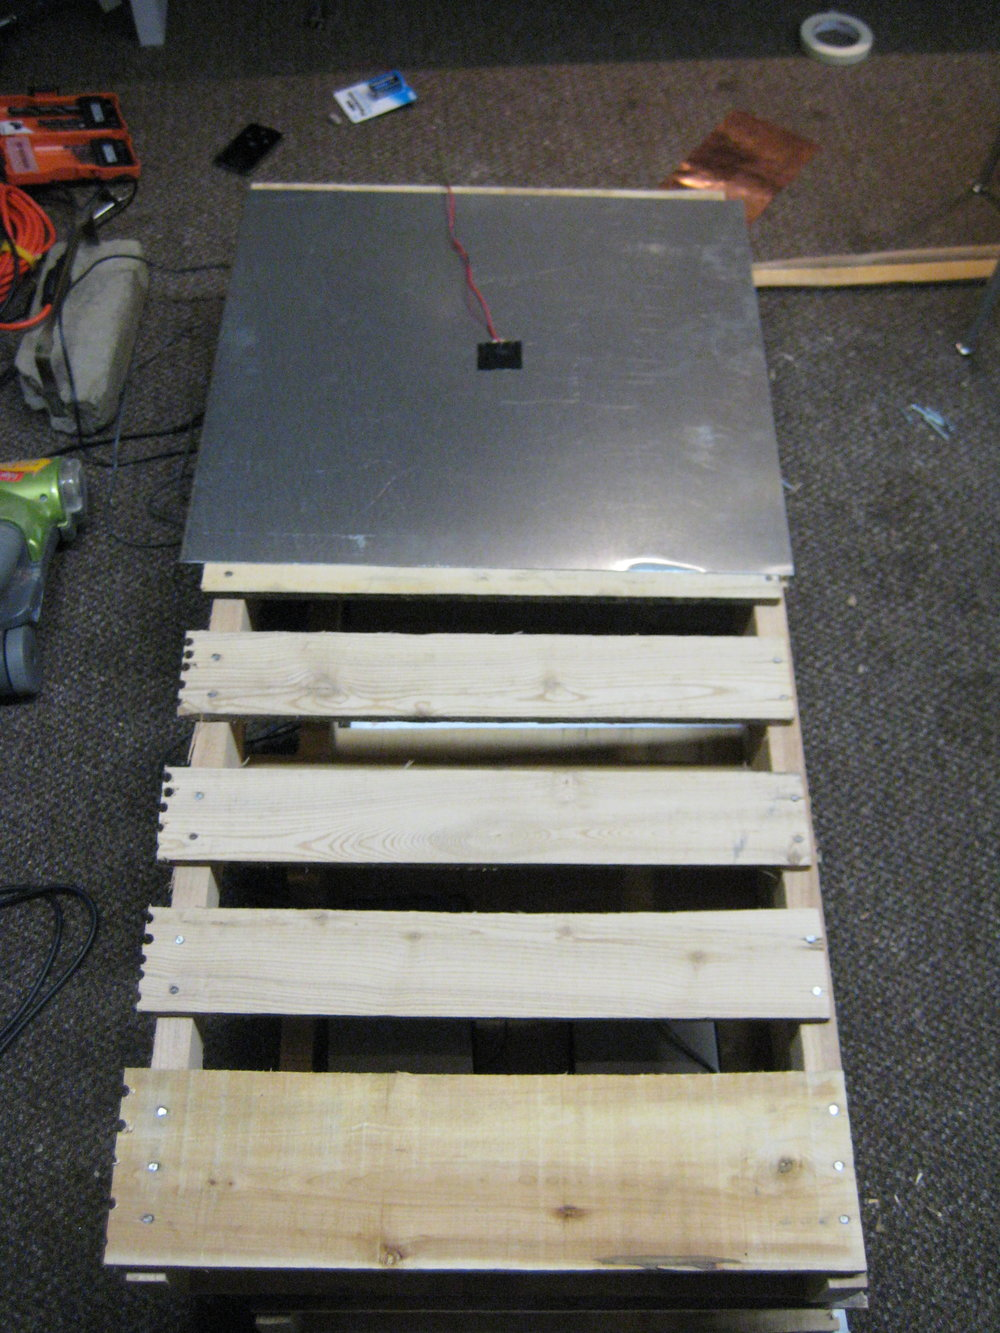 The next phase of construction was to create a durable casing that could withstand violent movements from a dancer. My solution was to encase the electronics in a docking palette covered in sheet metal. The first step of this process was to cut a docking skid in half andplace one half of the skid on top of the other.  I then attached a piezo microphone to the sheet metal and plugged it into the input of the circuit, placing the speakers directly underneath the sheet metal that is attached to the piezo microphone